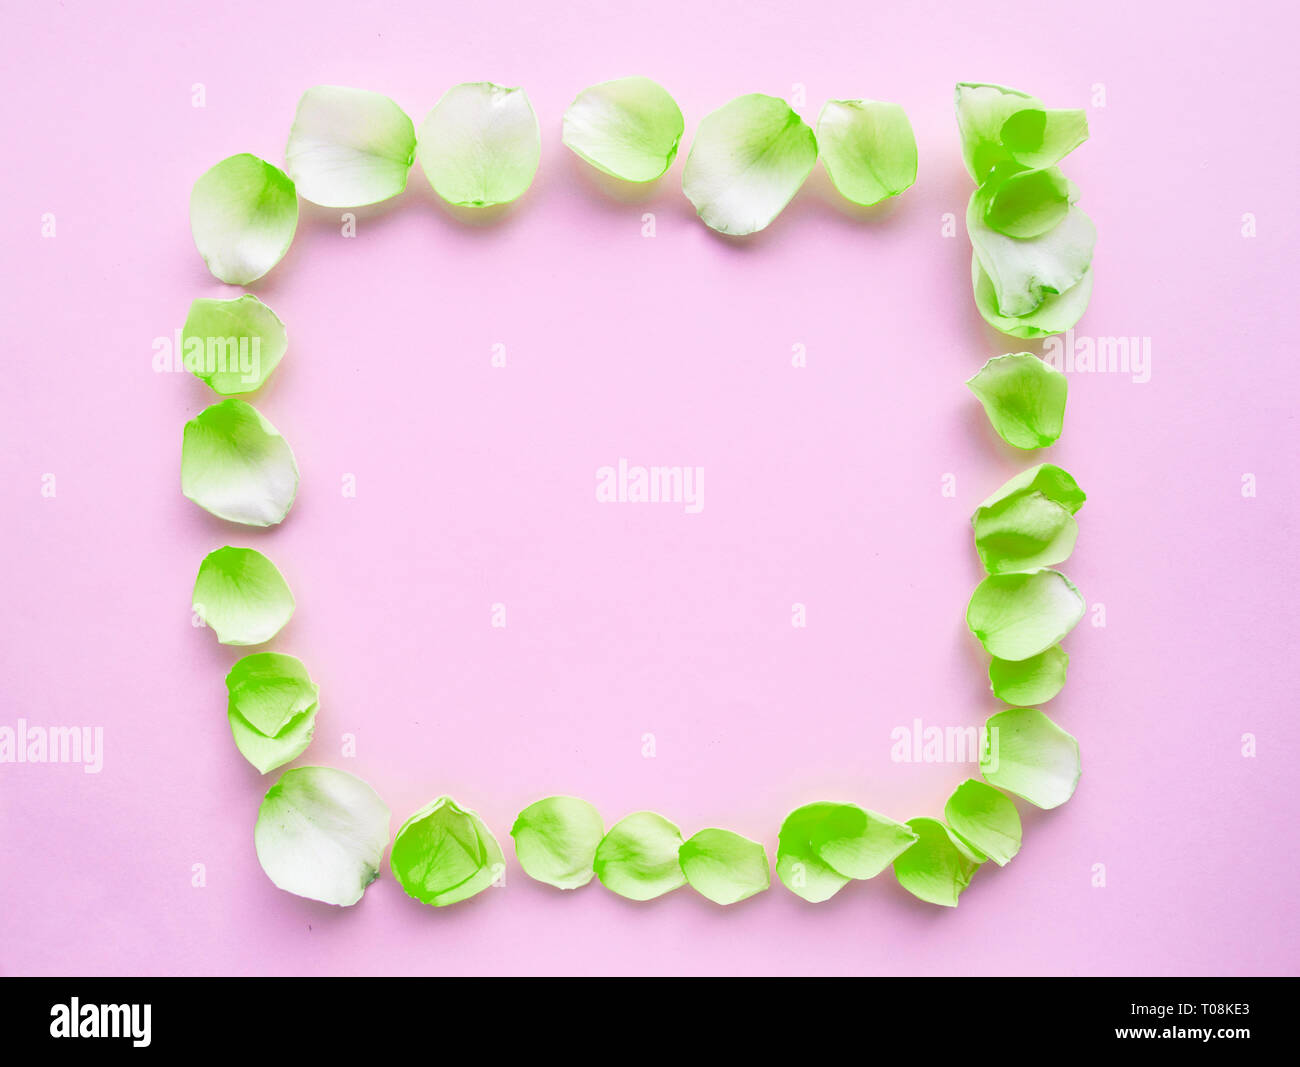 Flower frame with rose petals on pastel pink background. Flat lAY, ROMANTIC background. Stock Photo